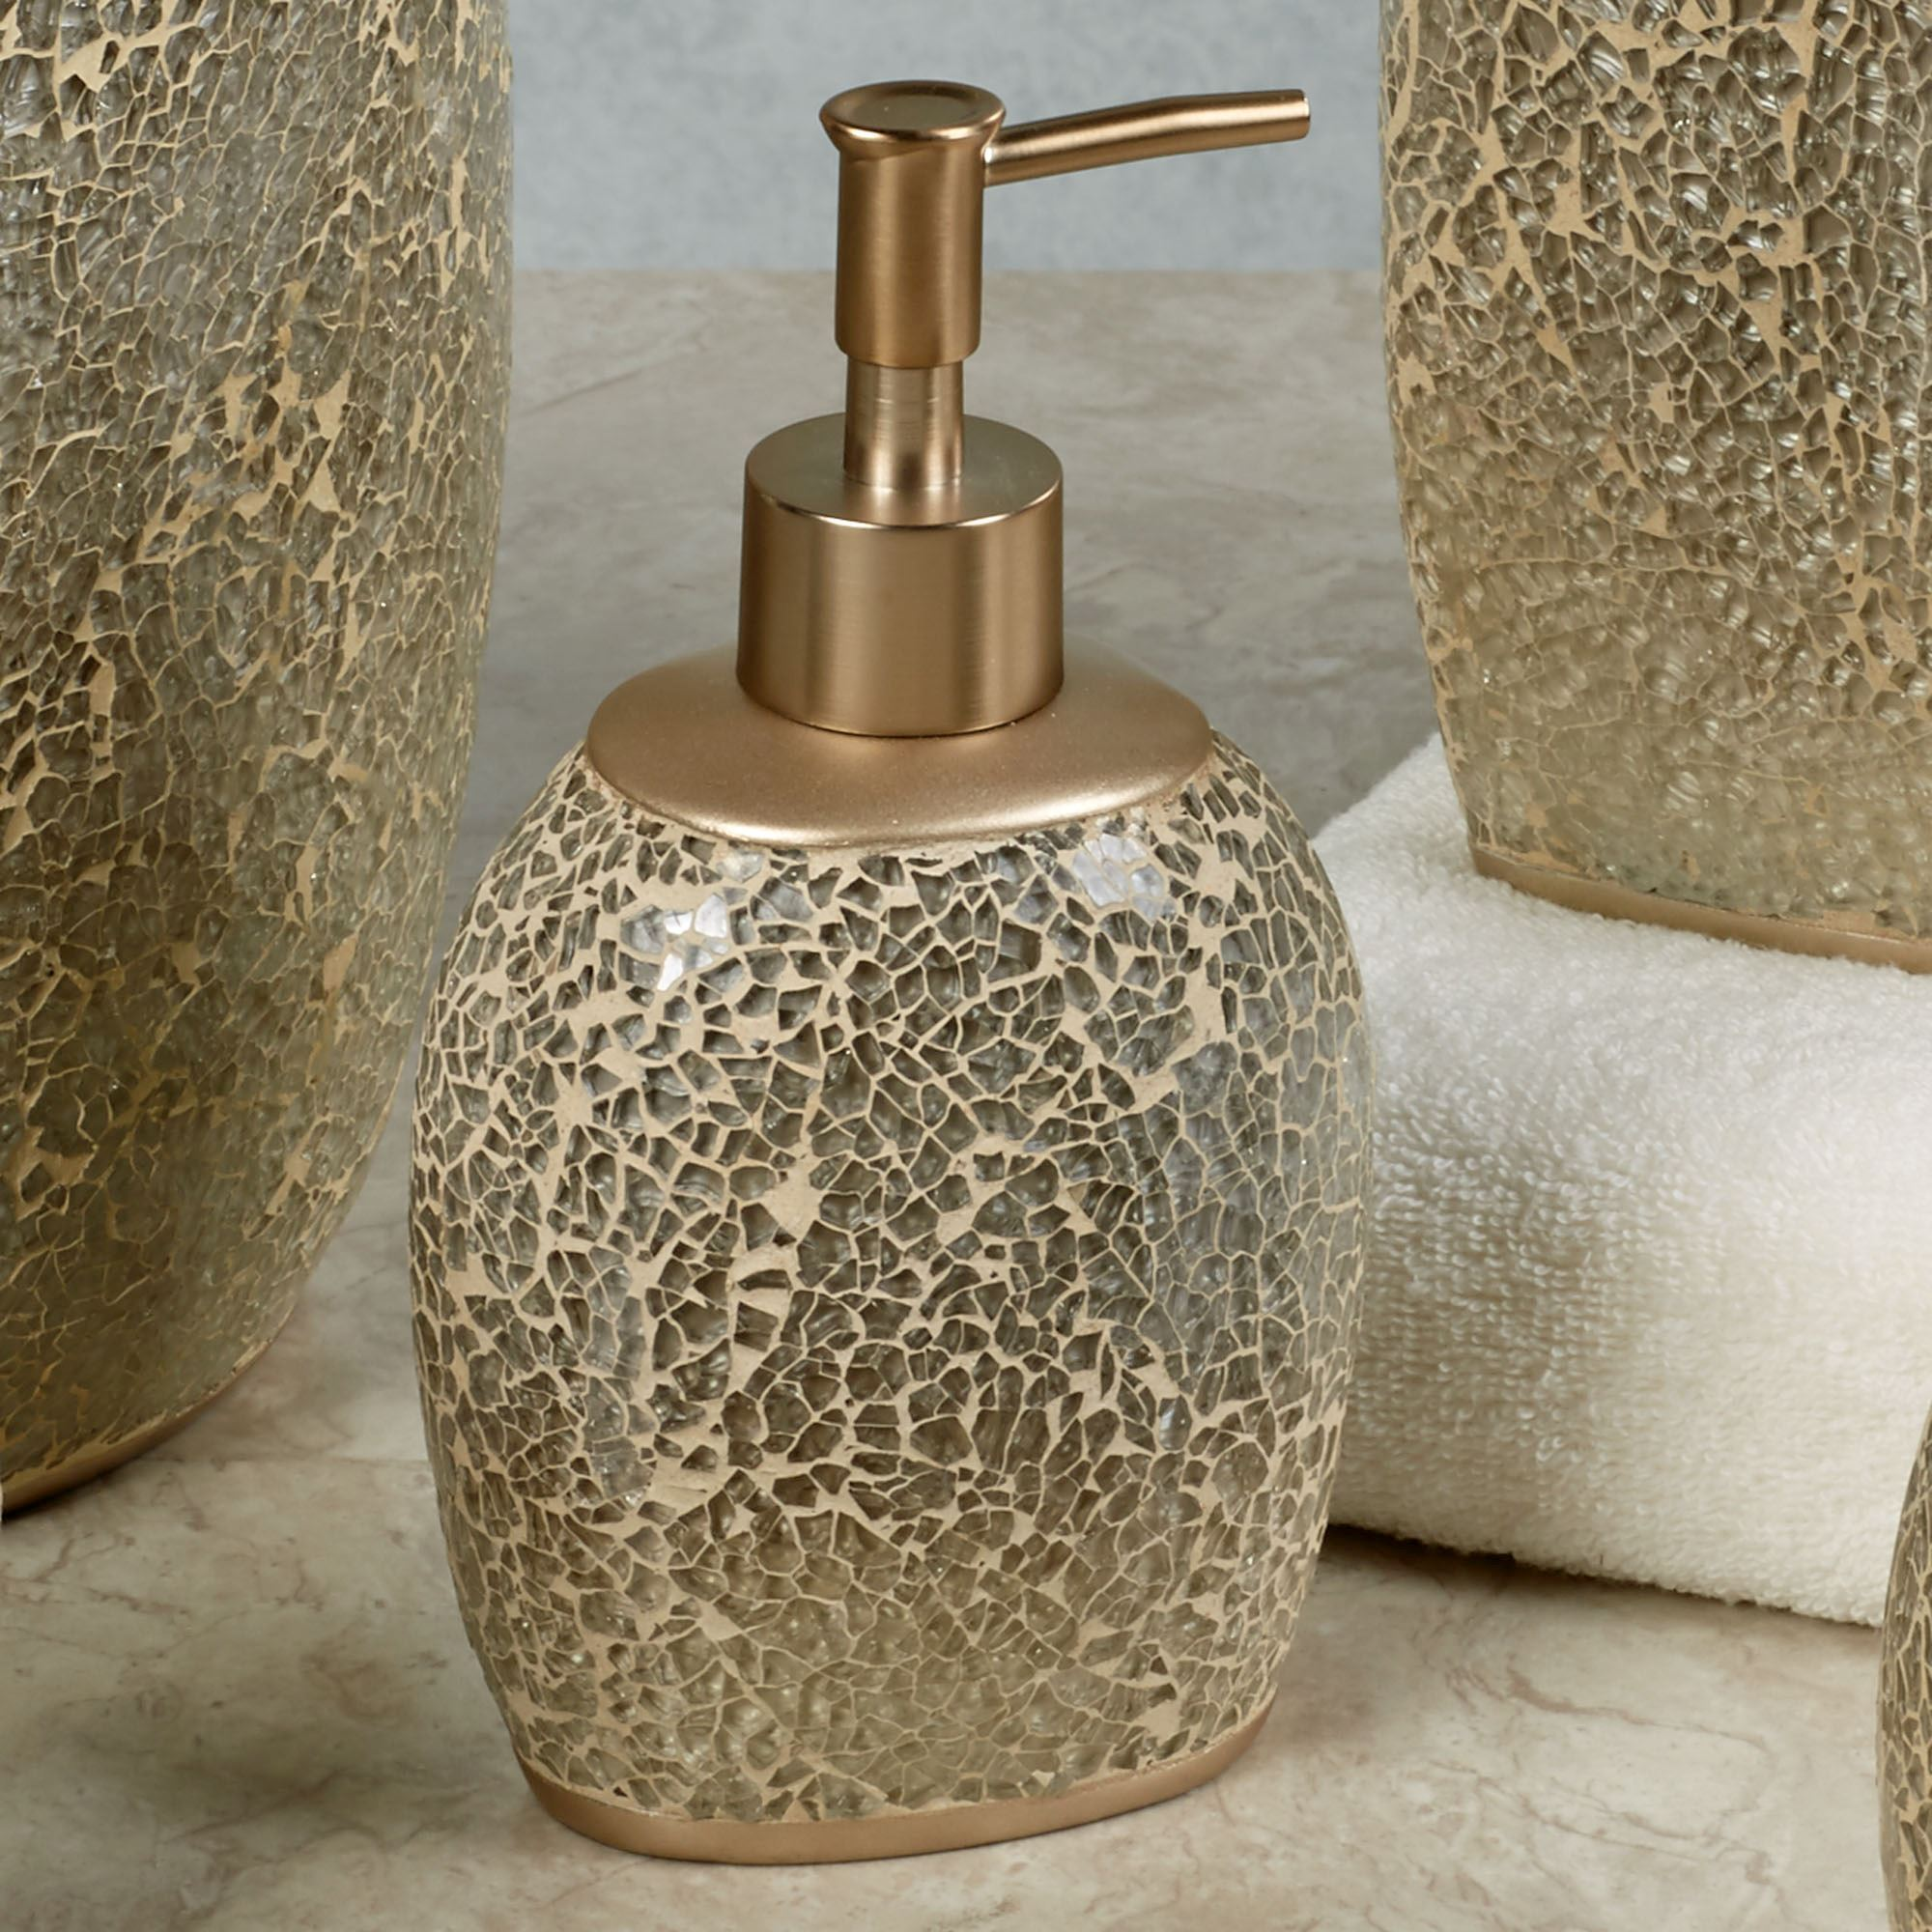 crackle bathroom accessories. Huntington Lotion Soap Dispenser Champagne Mosaic Bath Accessories